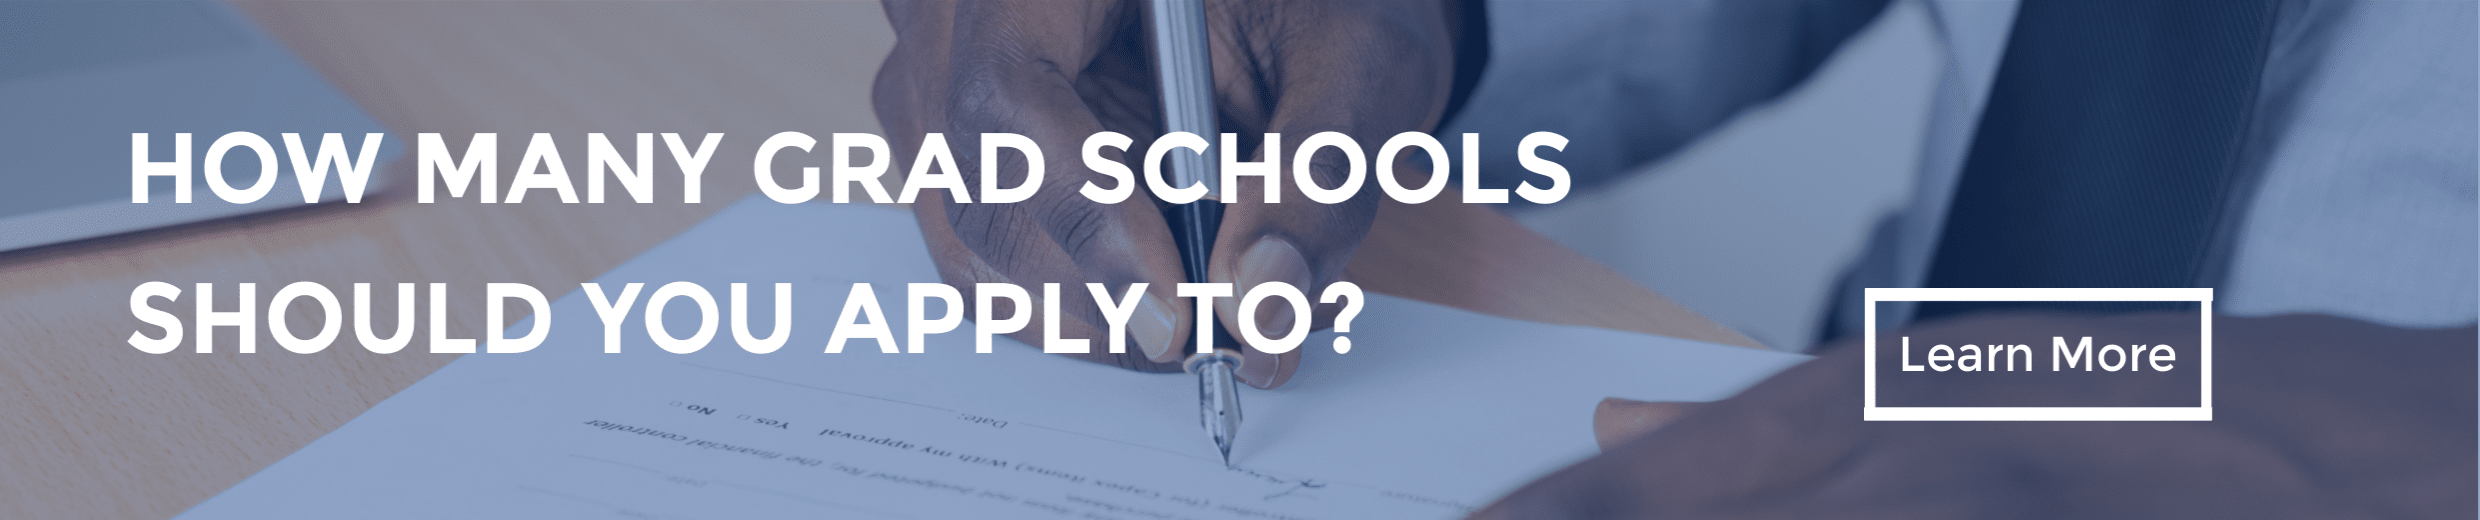 How Many Grad Schools Should You Apply to?